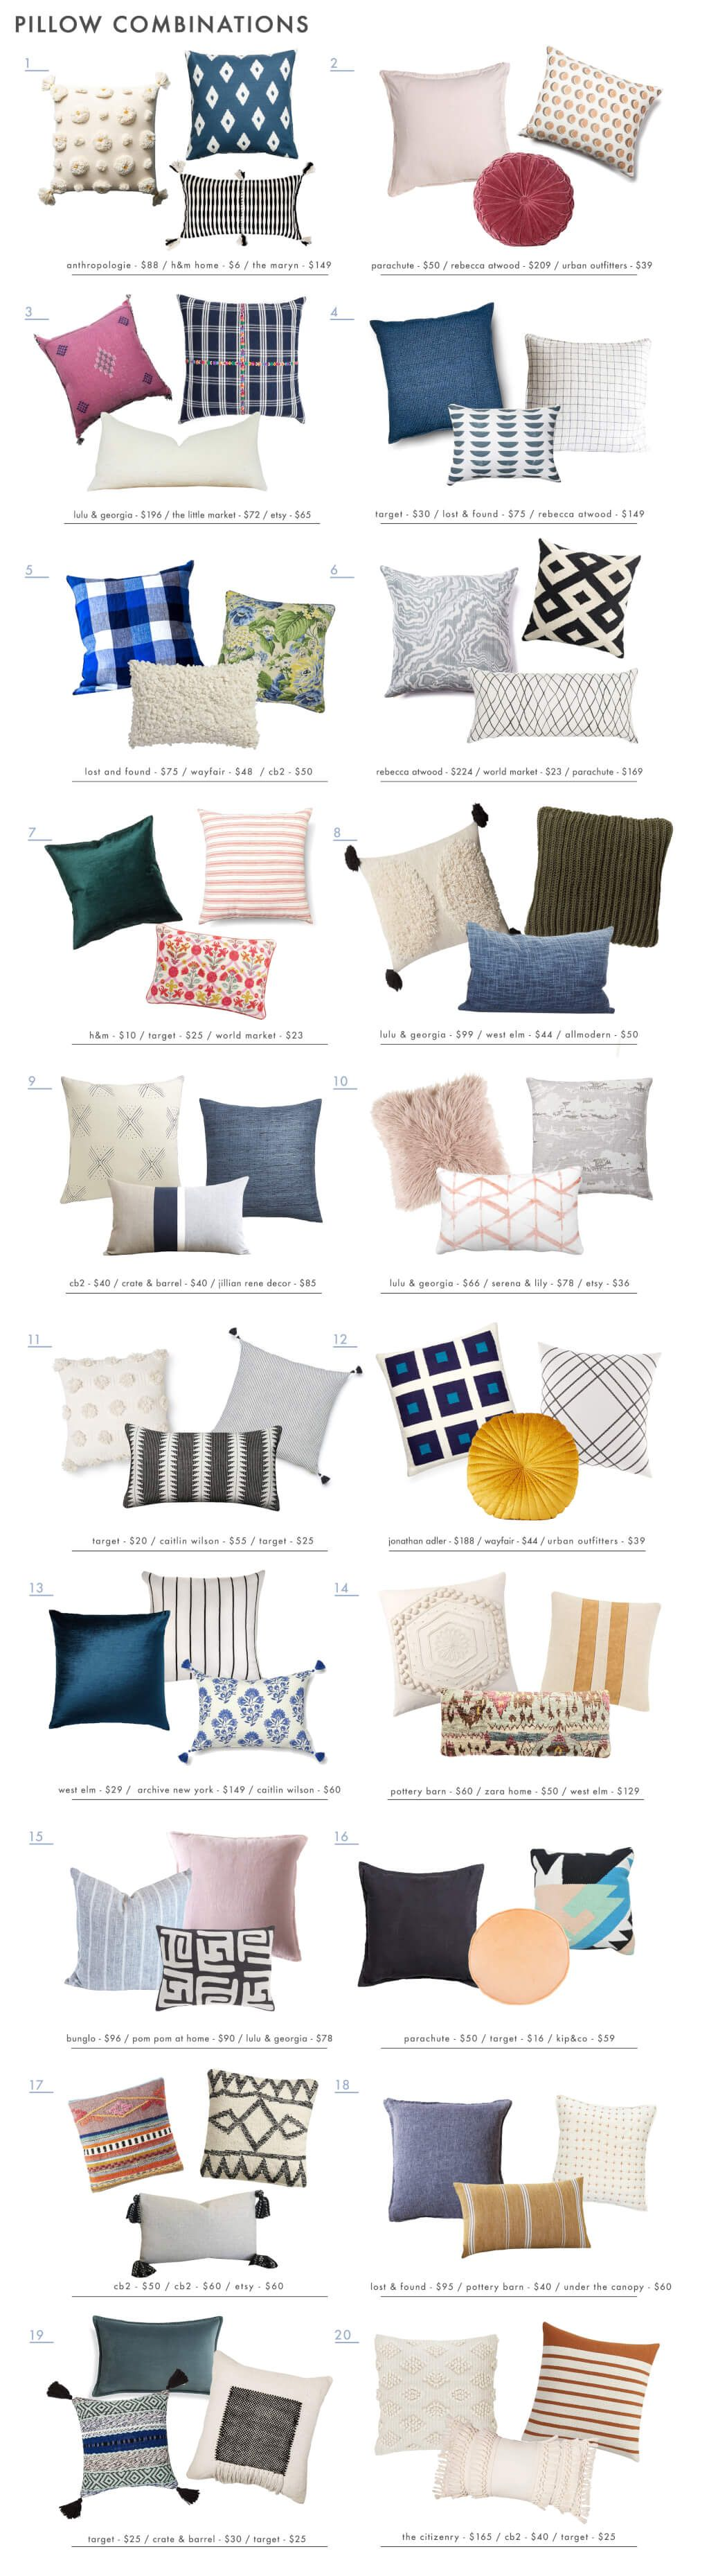 Stupendous A Year In Ehd Round Ups Style By Emily Henderson Round Onthecornerstone Fun Painted Chair Ideas Images Onthecornerstoneorg